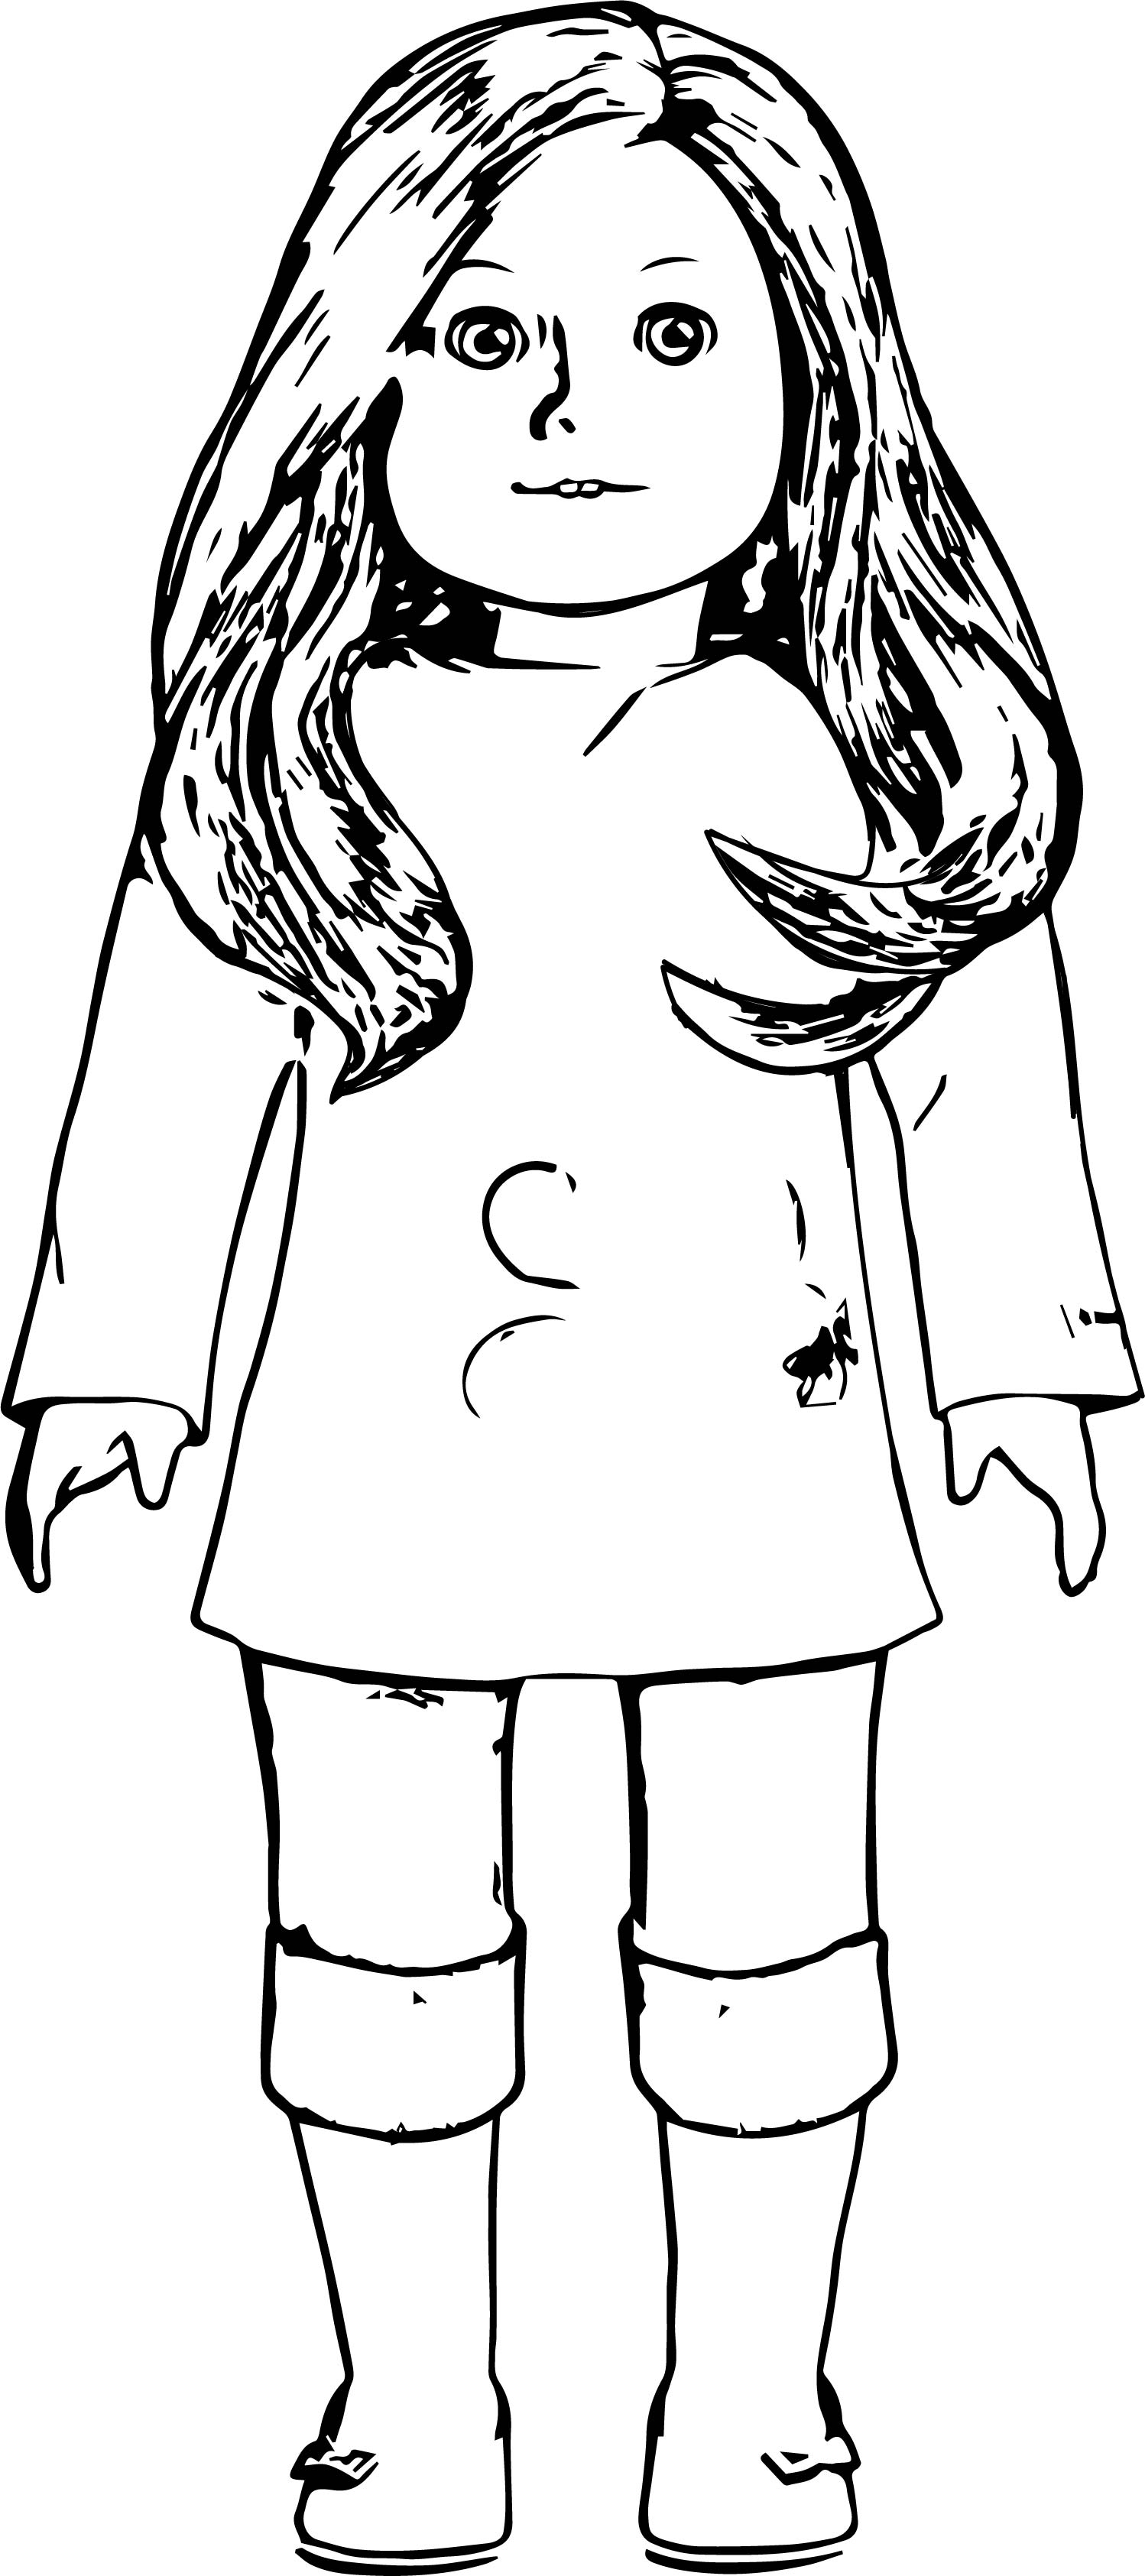 My american girl doll coloring page for American girl doll coloring page